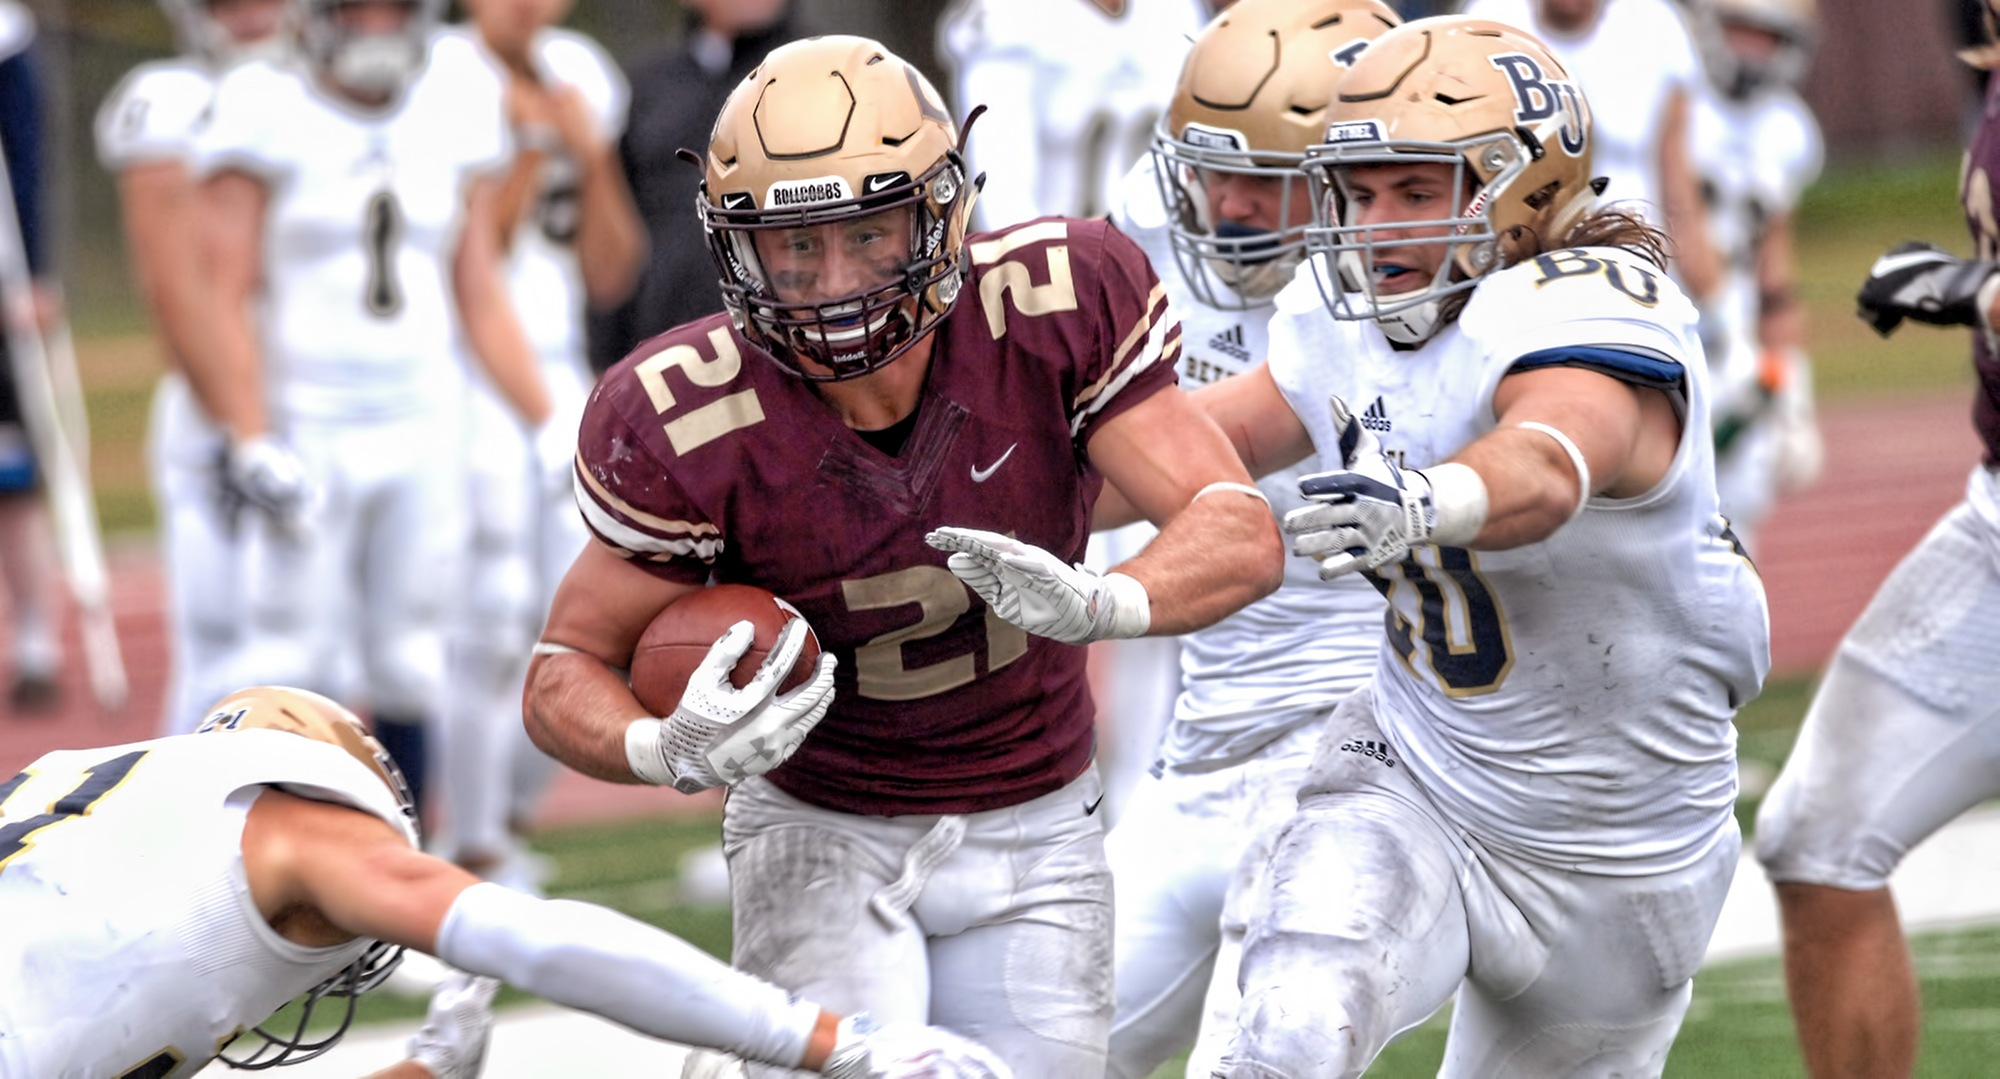 Chad Johnson breaks through three Bethel tacklers on his way to rushing for 191 yards in the MIAC-opening win for the Cobbers.